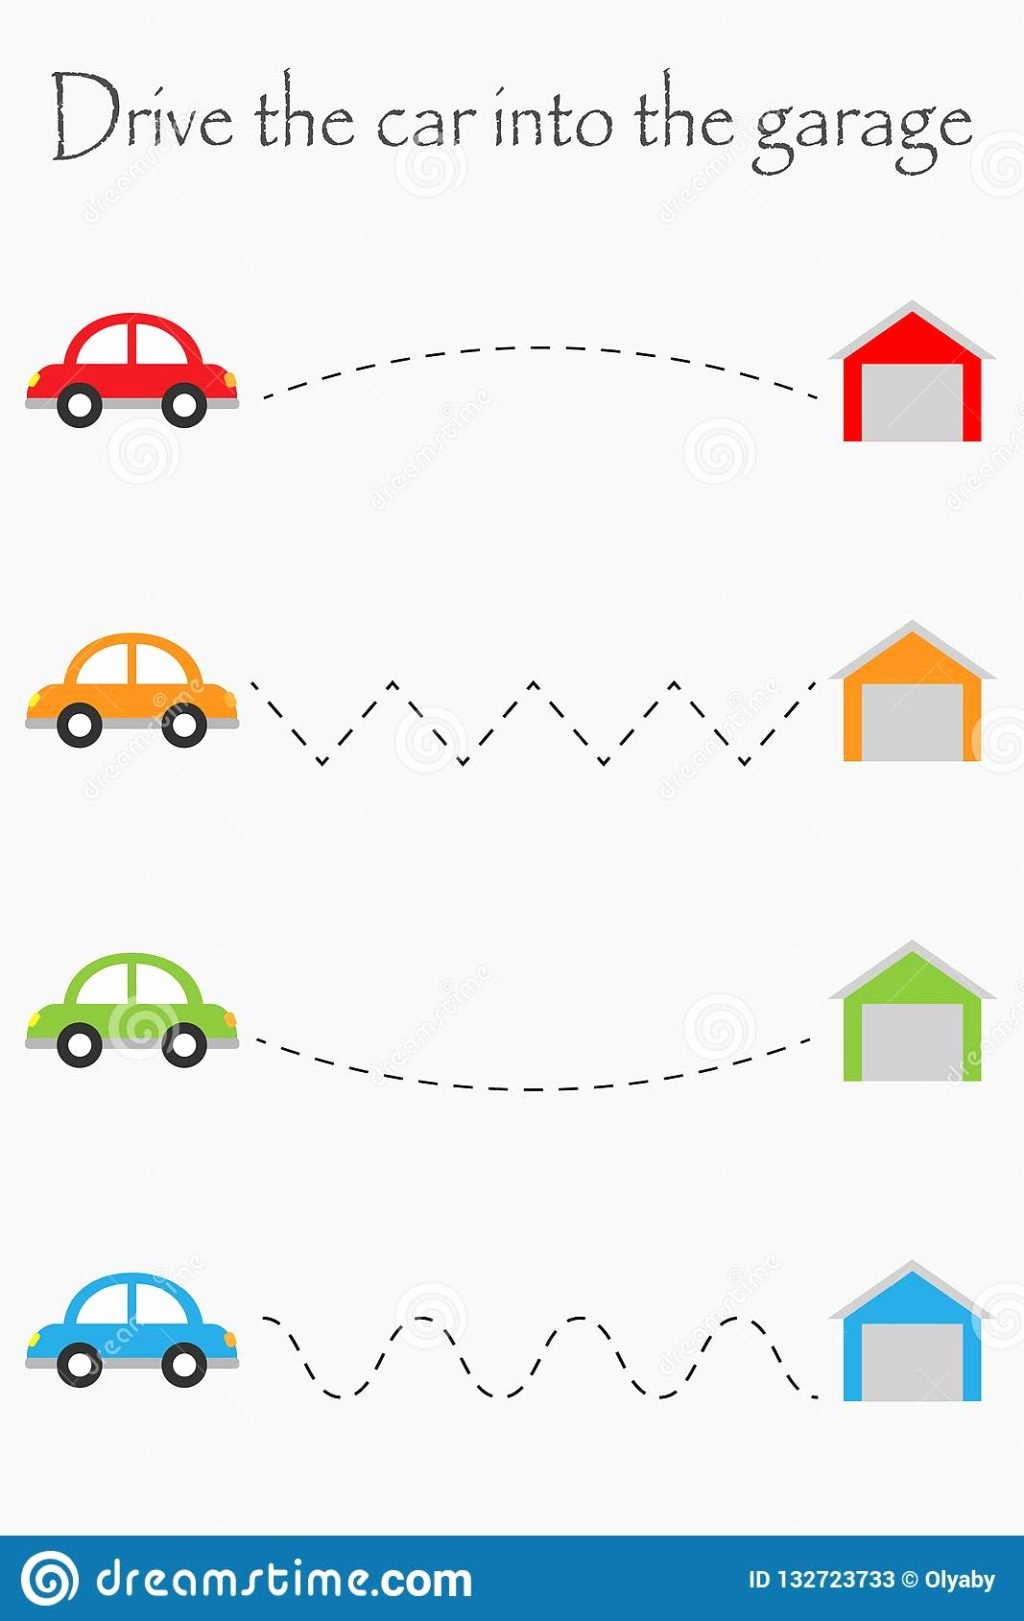 Car Worksheets for Preschoolers top Worksheet Worksheet Printable Activities for Preschoolers